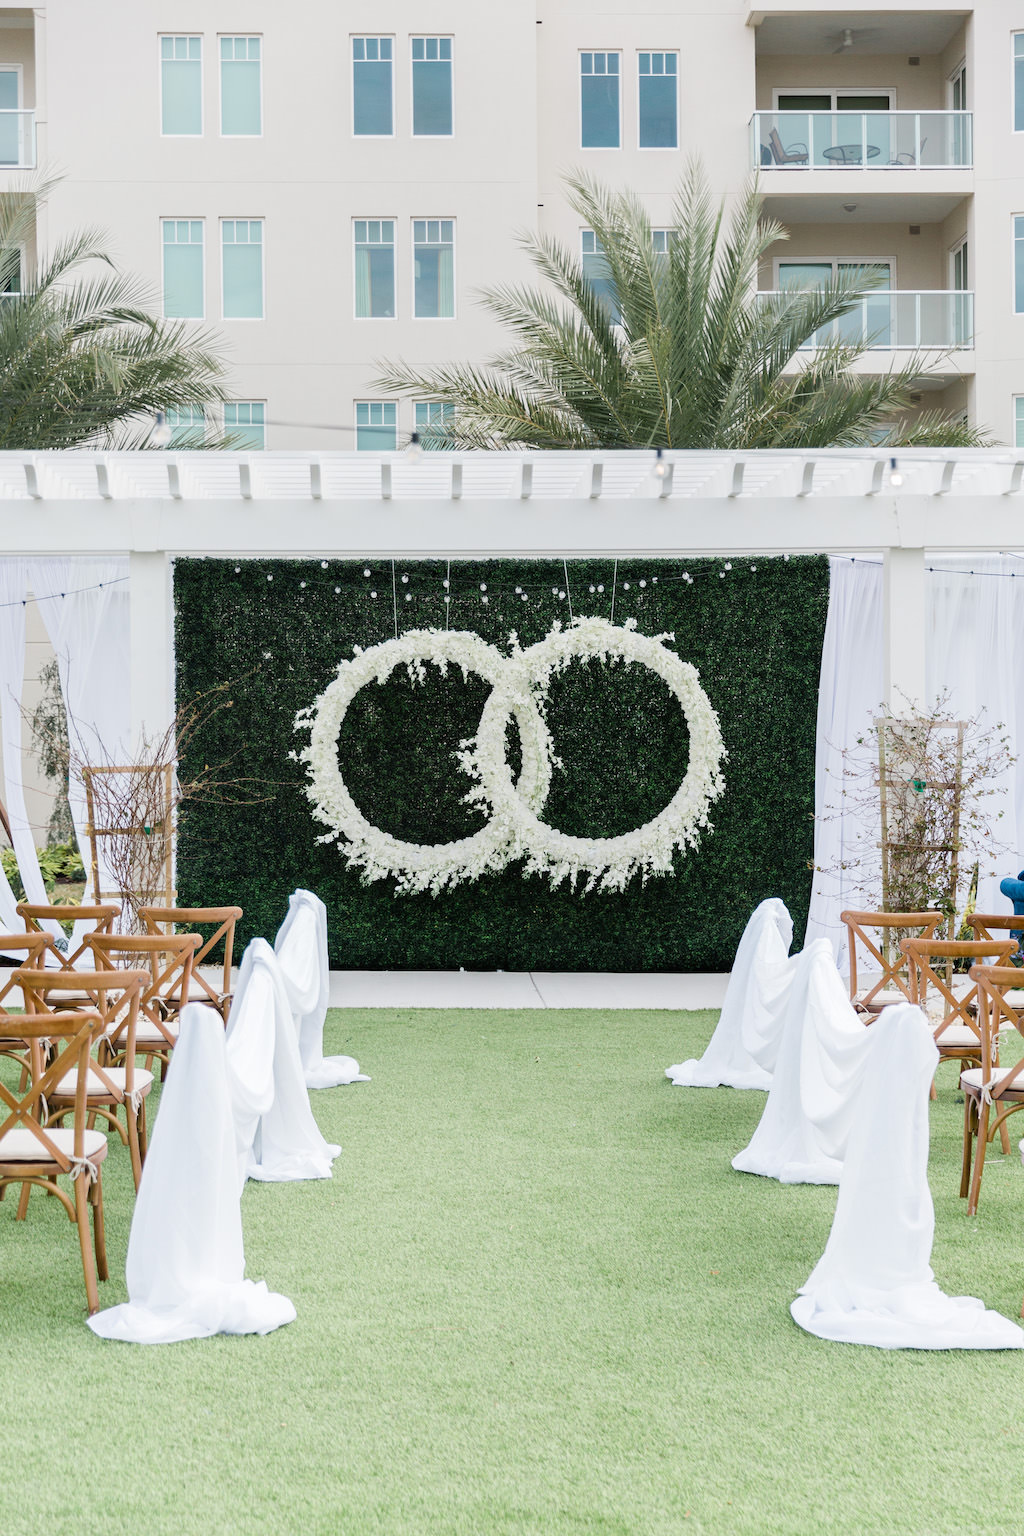 Modern, Garden Inspired Outdoor Wedding Ceremony, Gazebo Alter, Luxurious Infinity Ring Hanging Floral Arrangement with White Orchids, Dark Green Boxwood Wall, Wood Cross Back Chairs, Draping   Tampa Bay Wedding Planner Special Moments Event Planning   Tampa Bay Wedding Florist Gabro Event Services